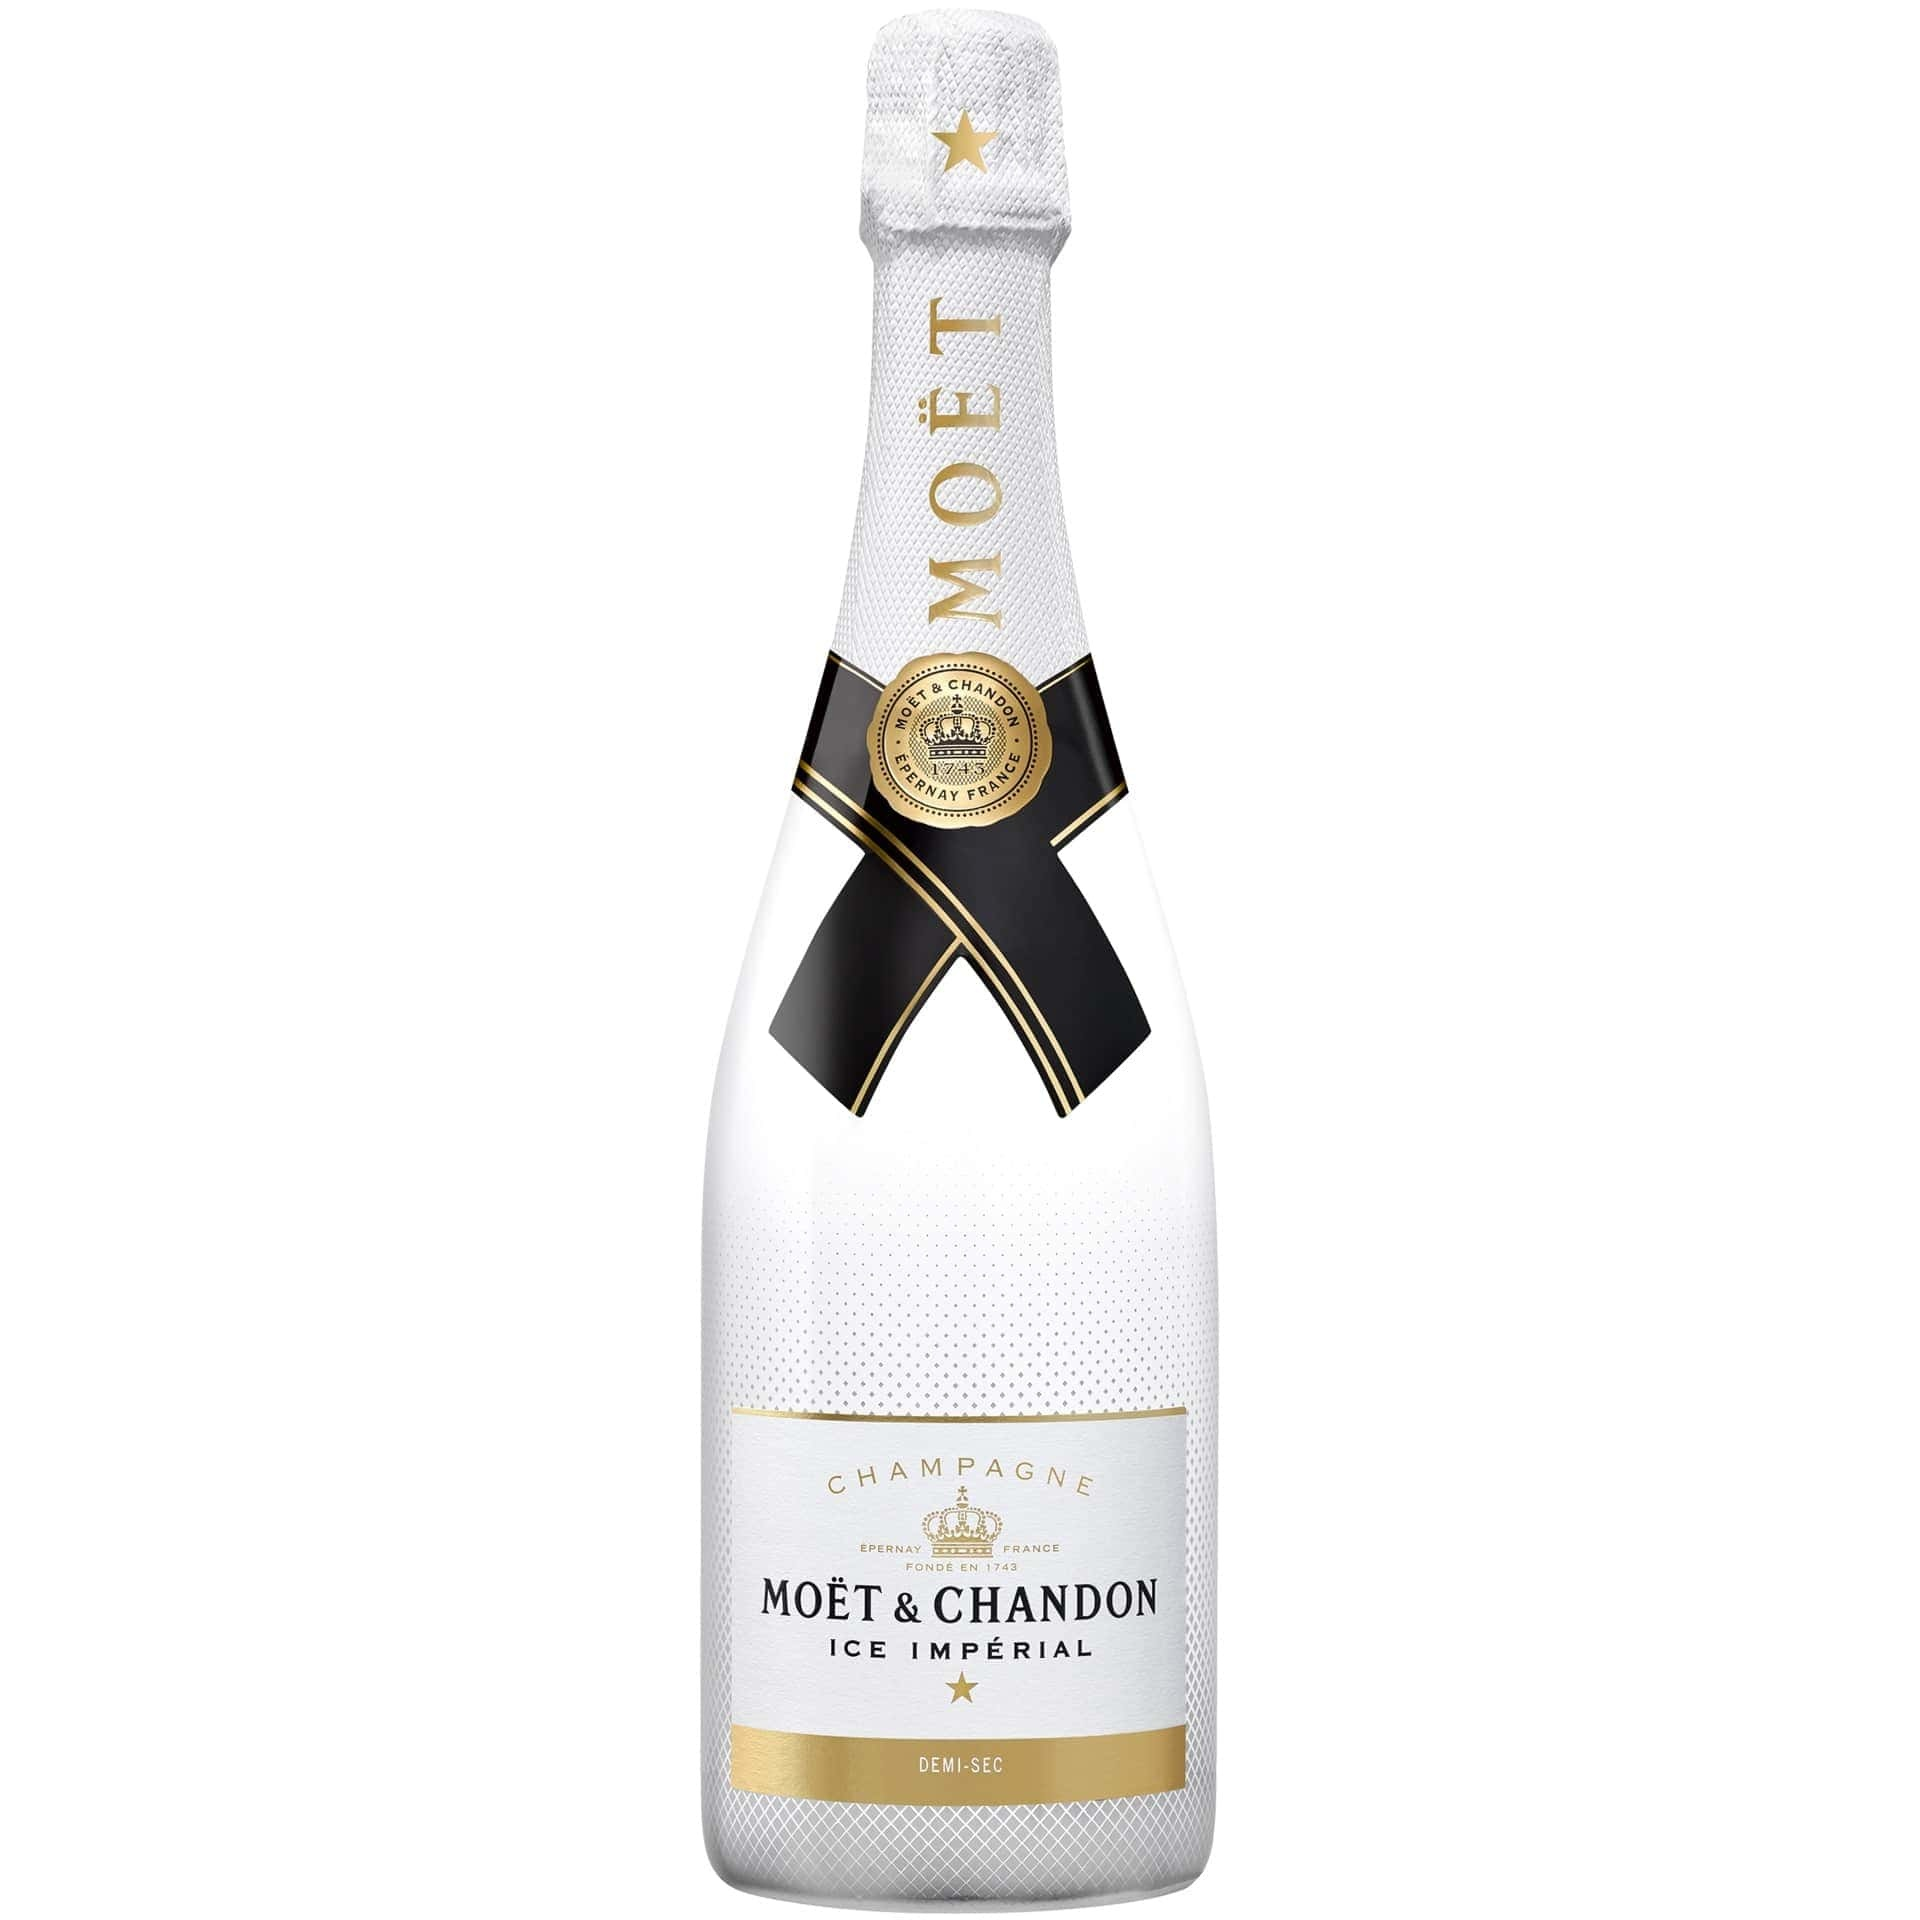 Moët & Chandon ICE Impérial Champagne